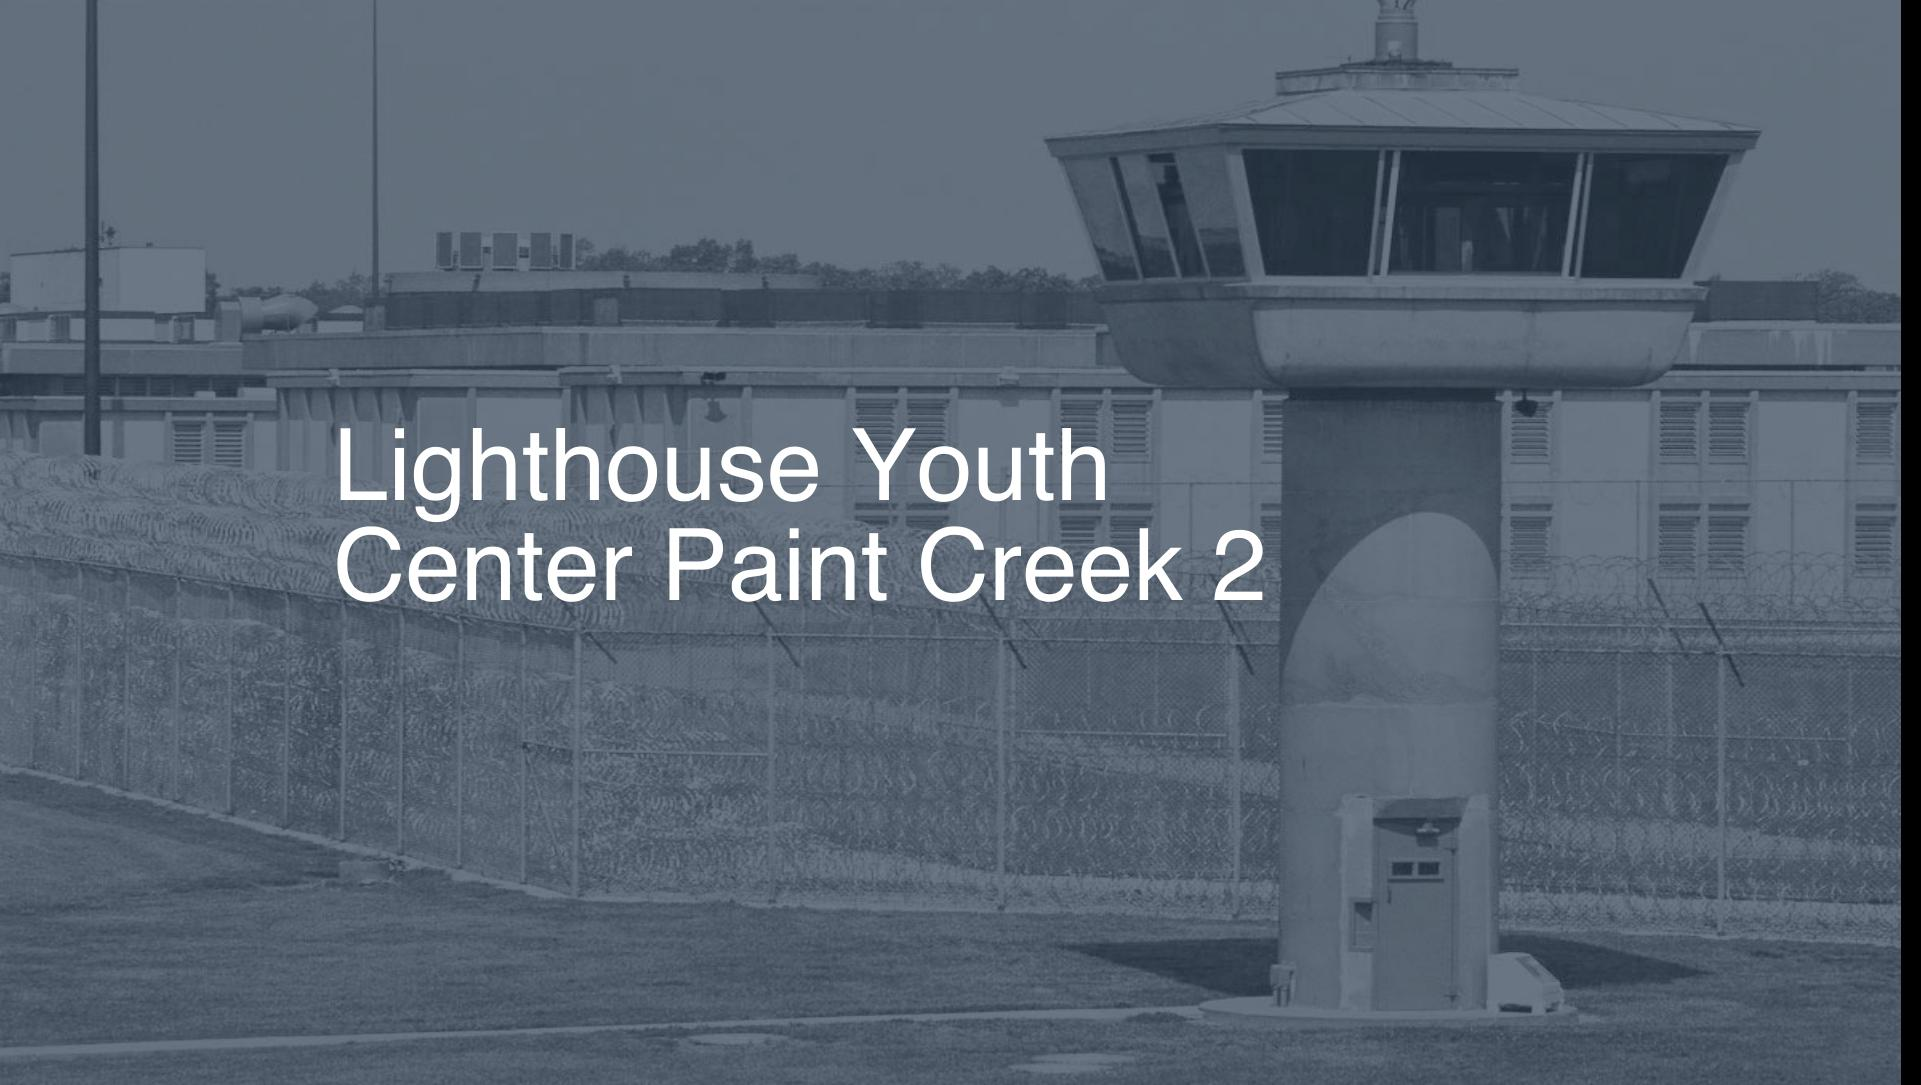 Lighthouse Youth Center Paint Creek correctional facility picture